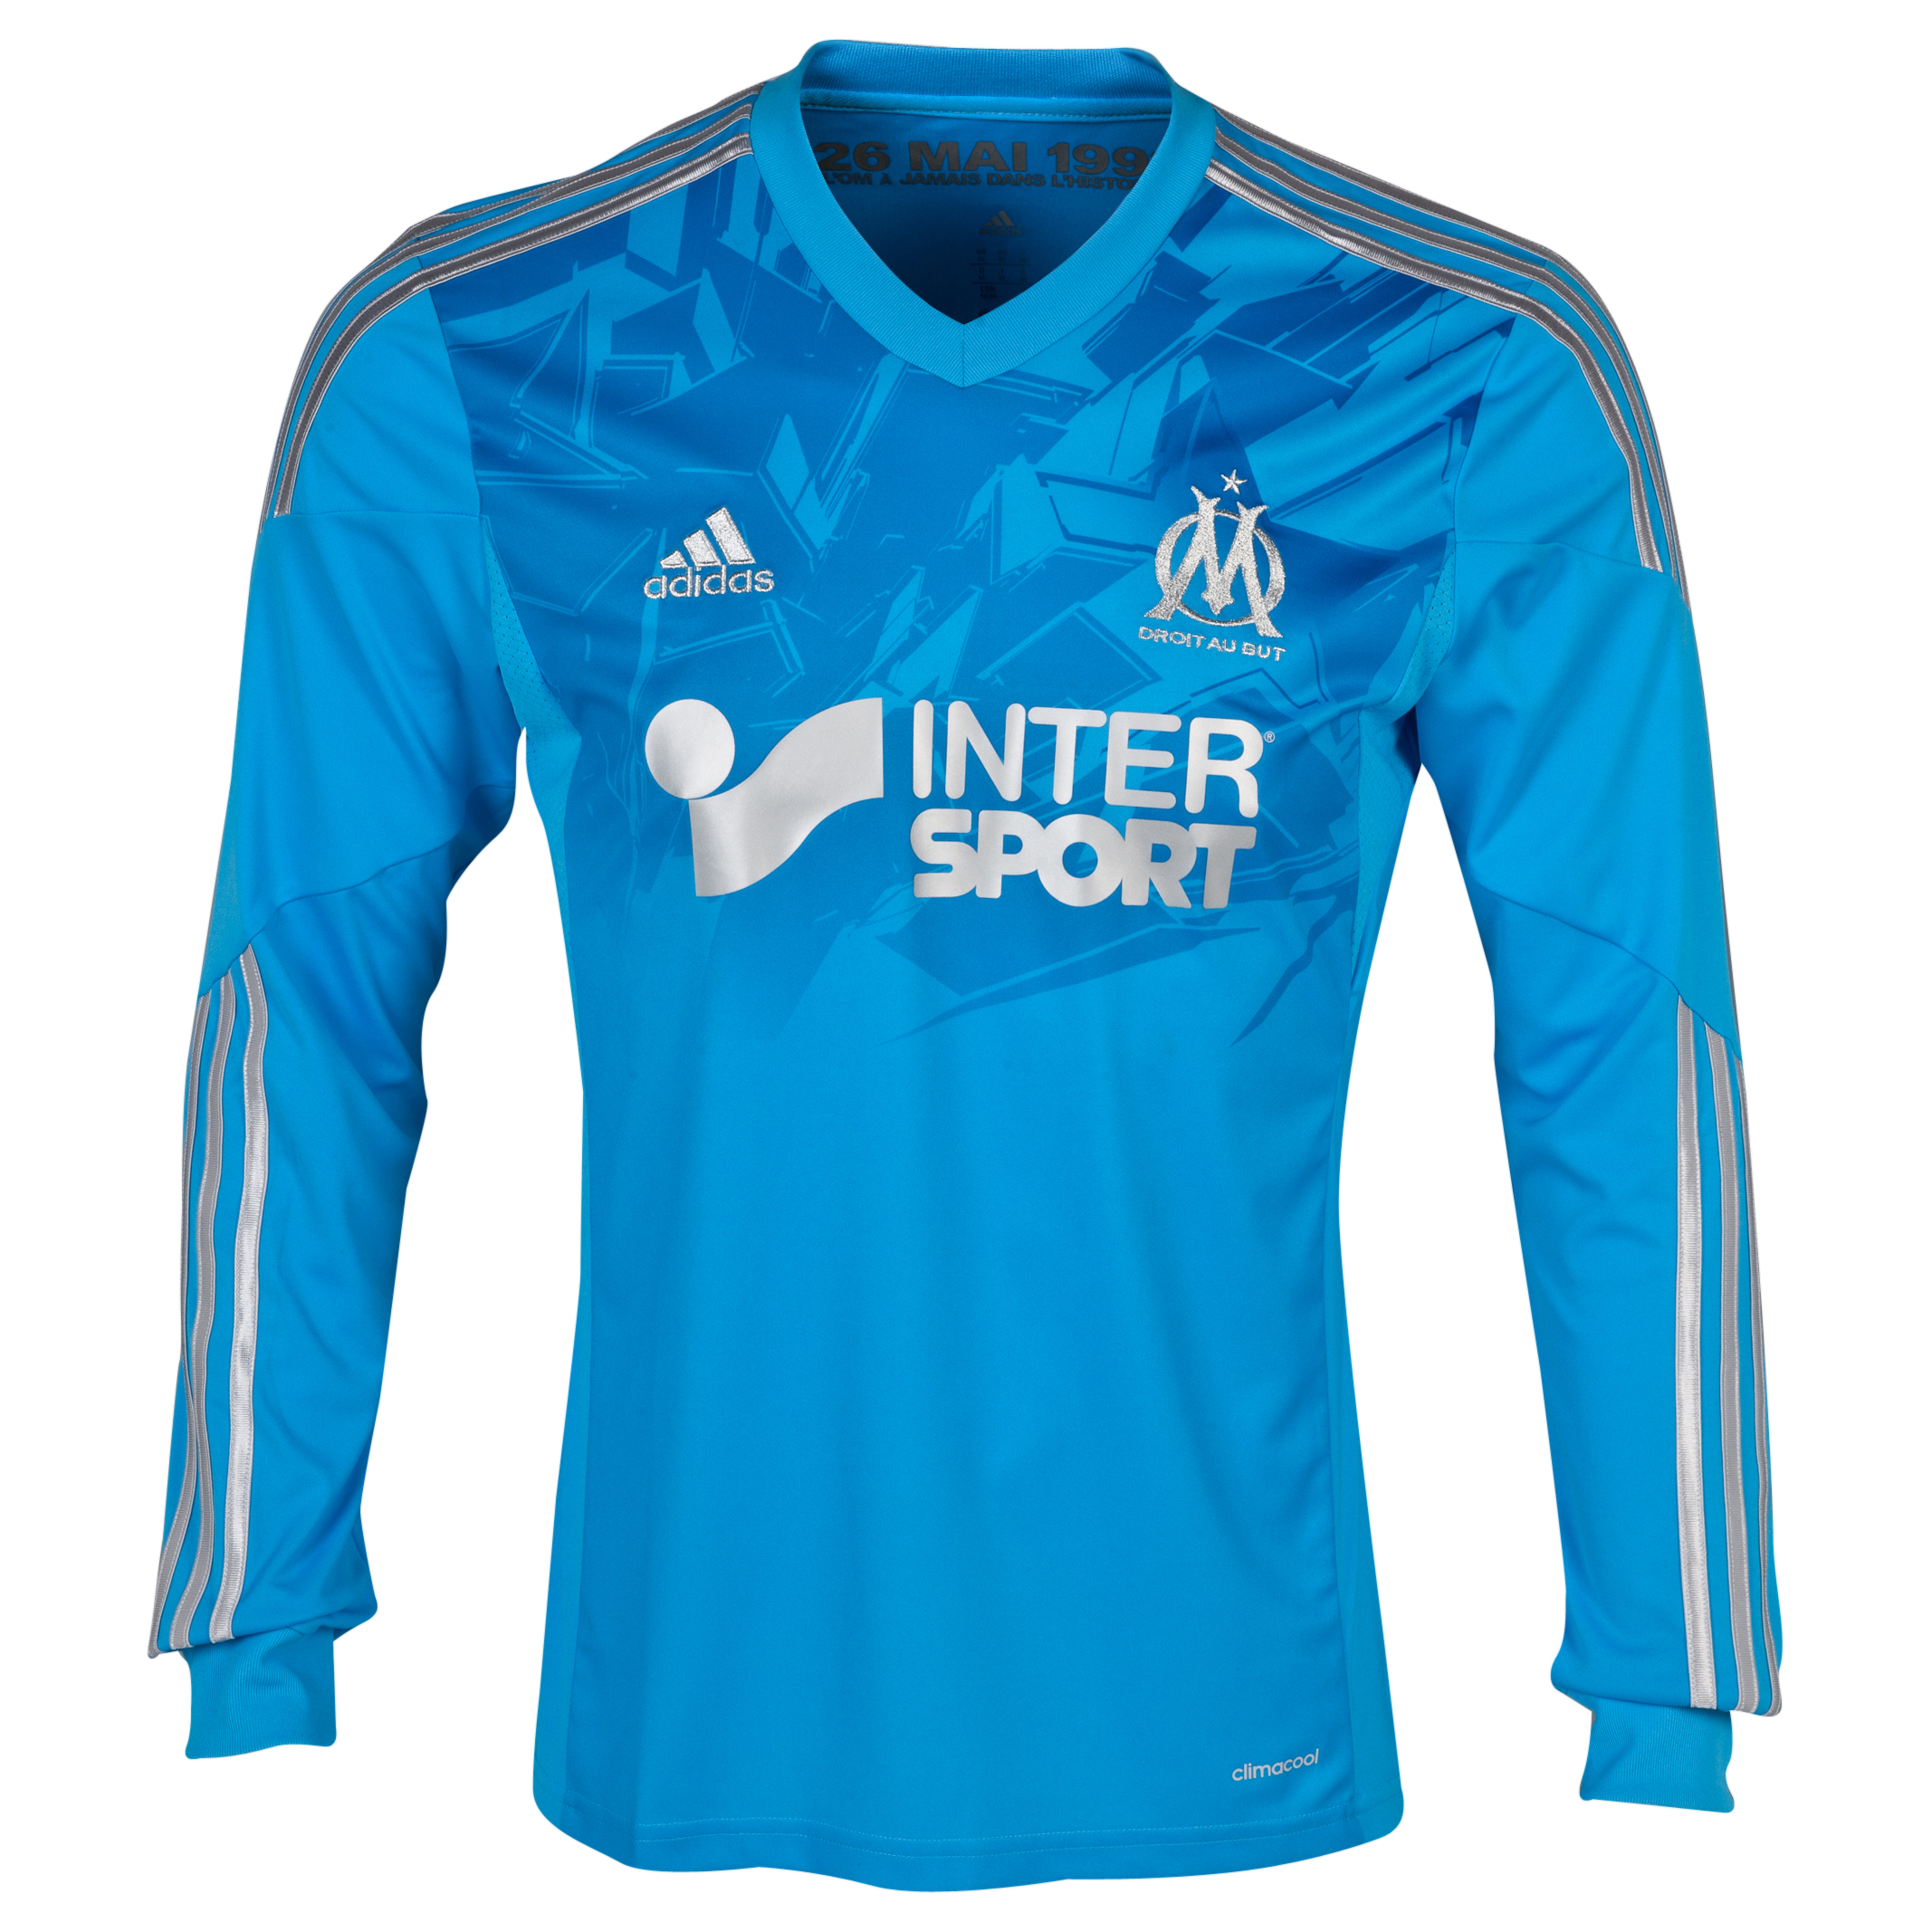 Olympique de Marseille Third Shirt LS 2013/14 - Mens Blue